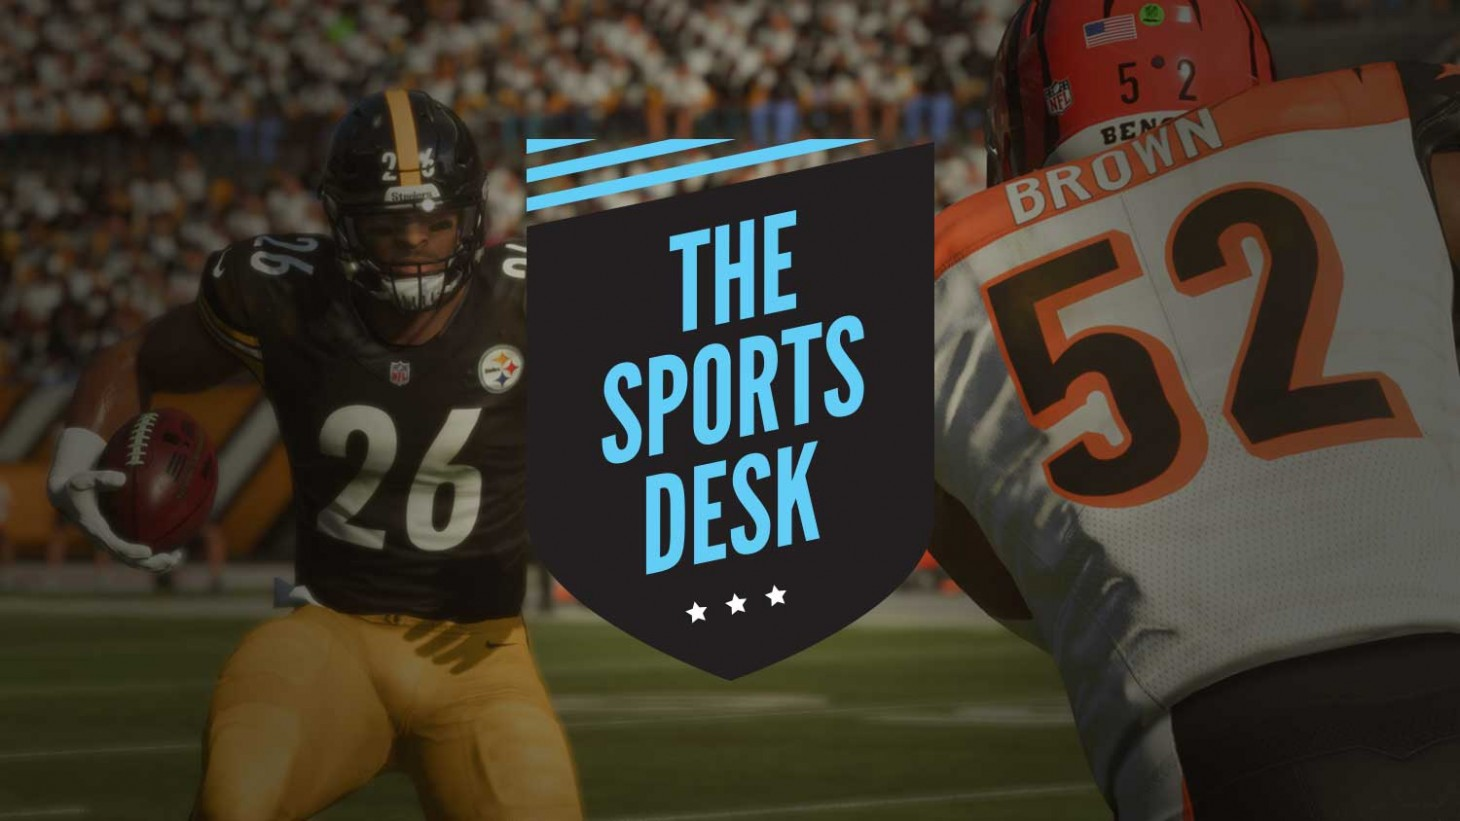 Hands-On Time With Madden 19 & FIFA 19 At E3 2018 - Game